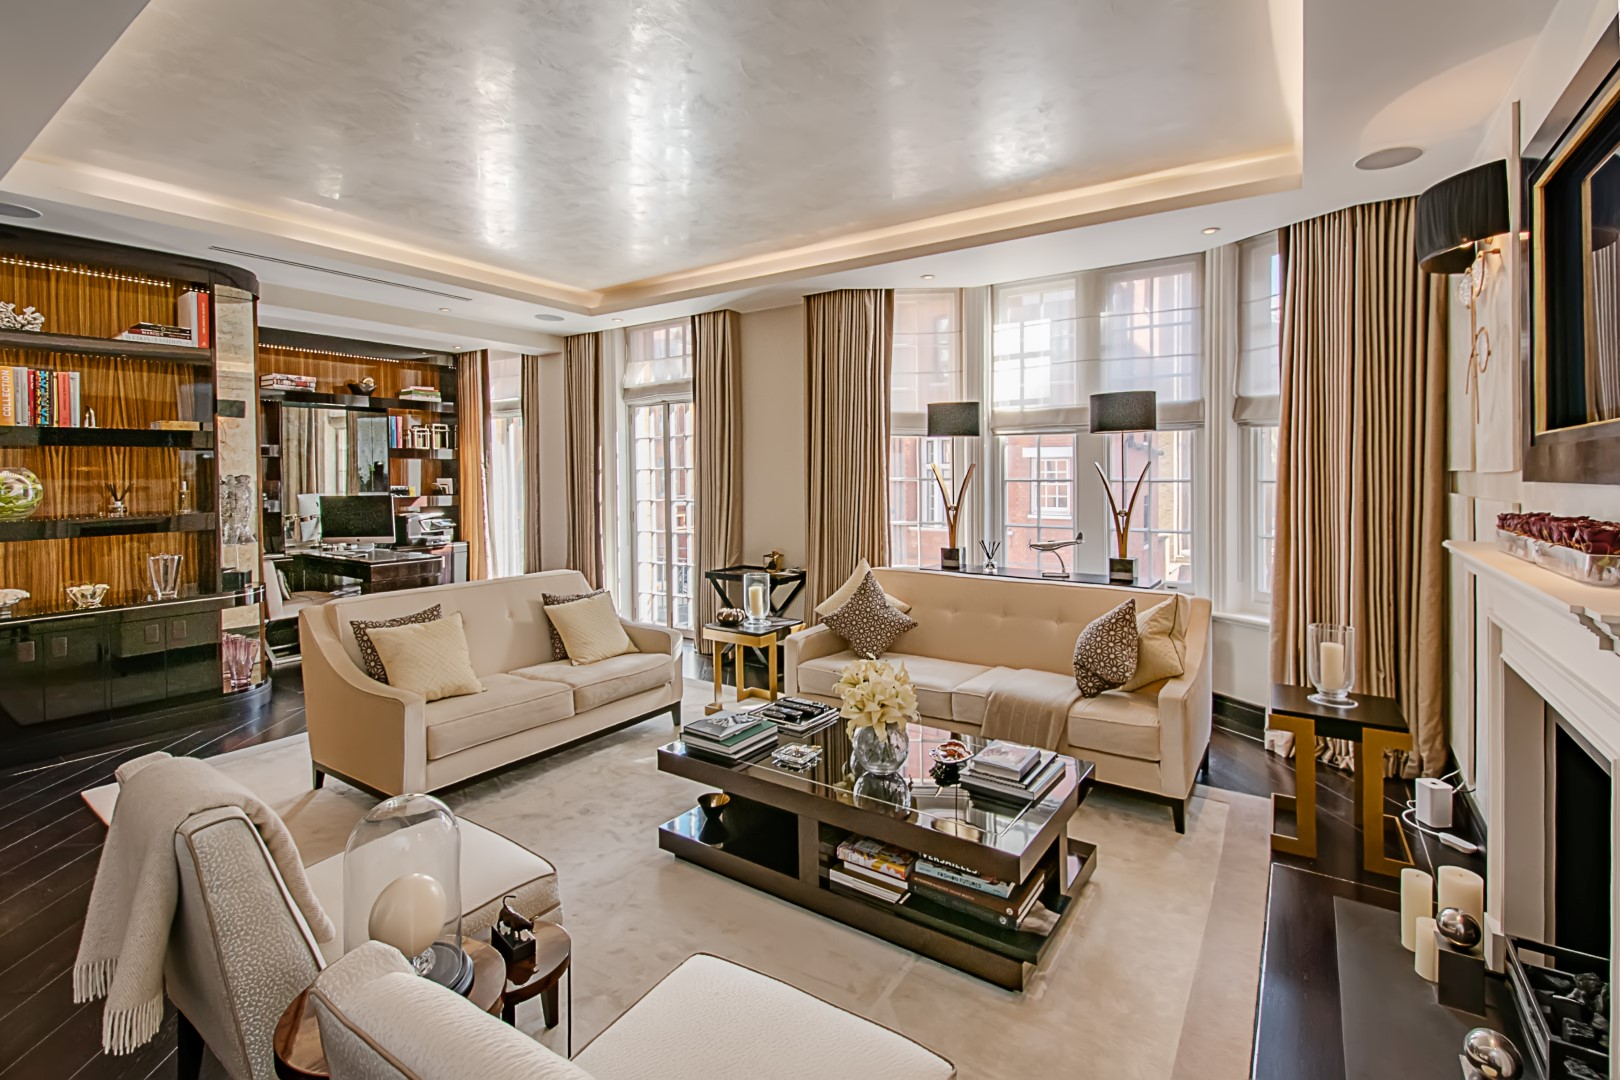 Hans Crescent, Reception room, Knightsbridge, Chelsea, london, Prime central london, Real estate, estate agent